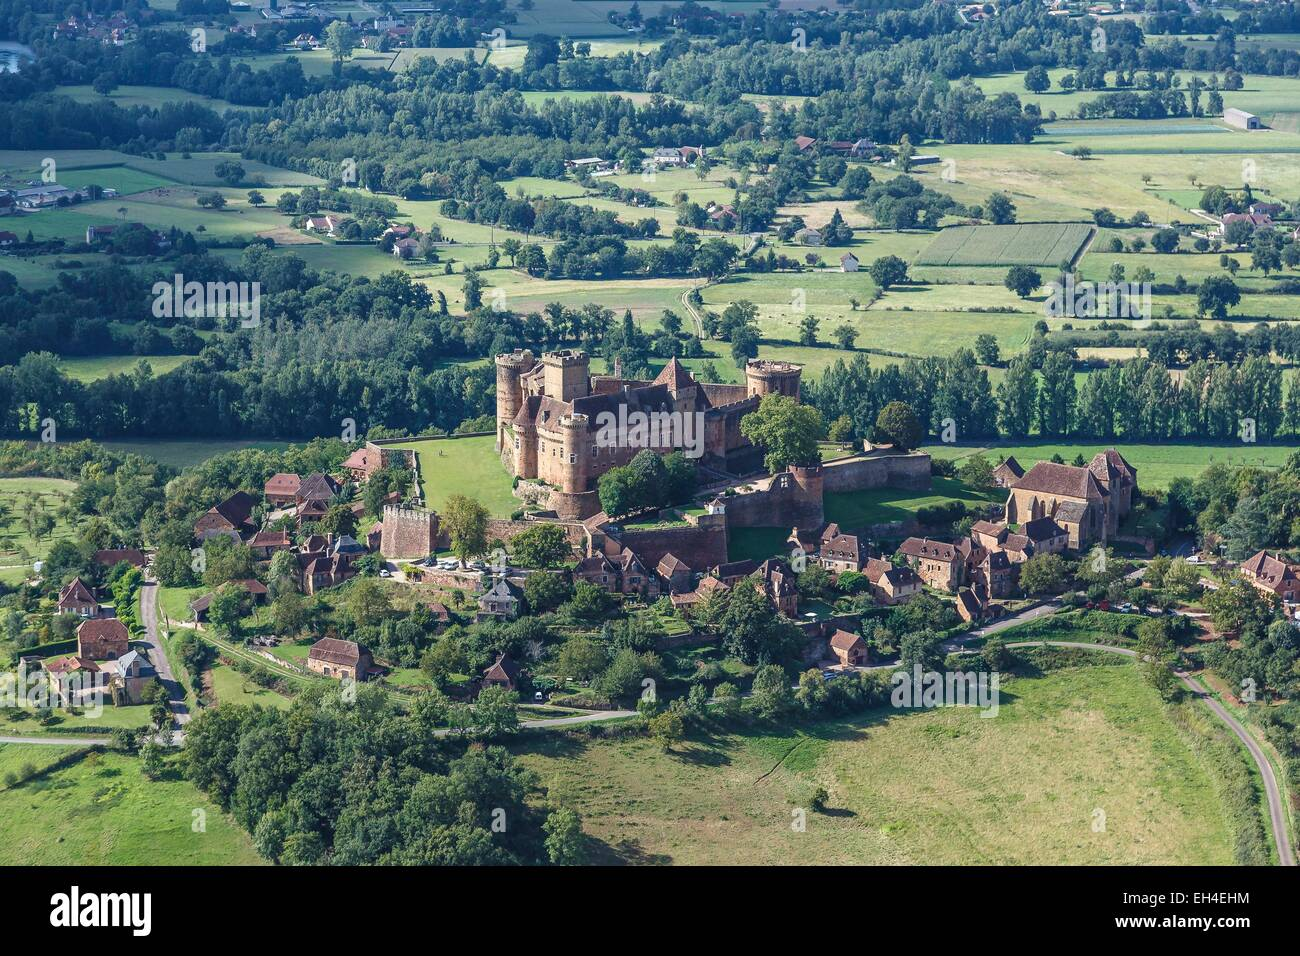 France, Lot, Prudhomat, the village and Castelnau Bretenoux castle (aerial view) Stock Photo